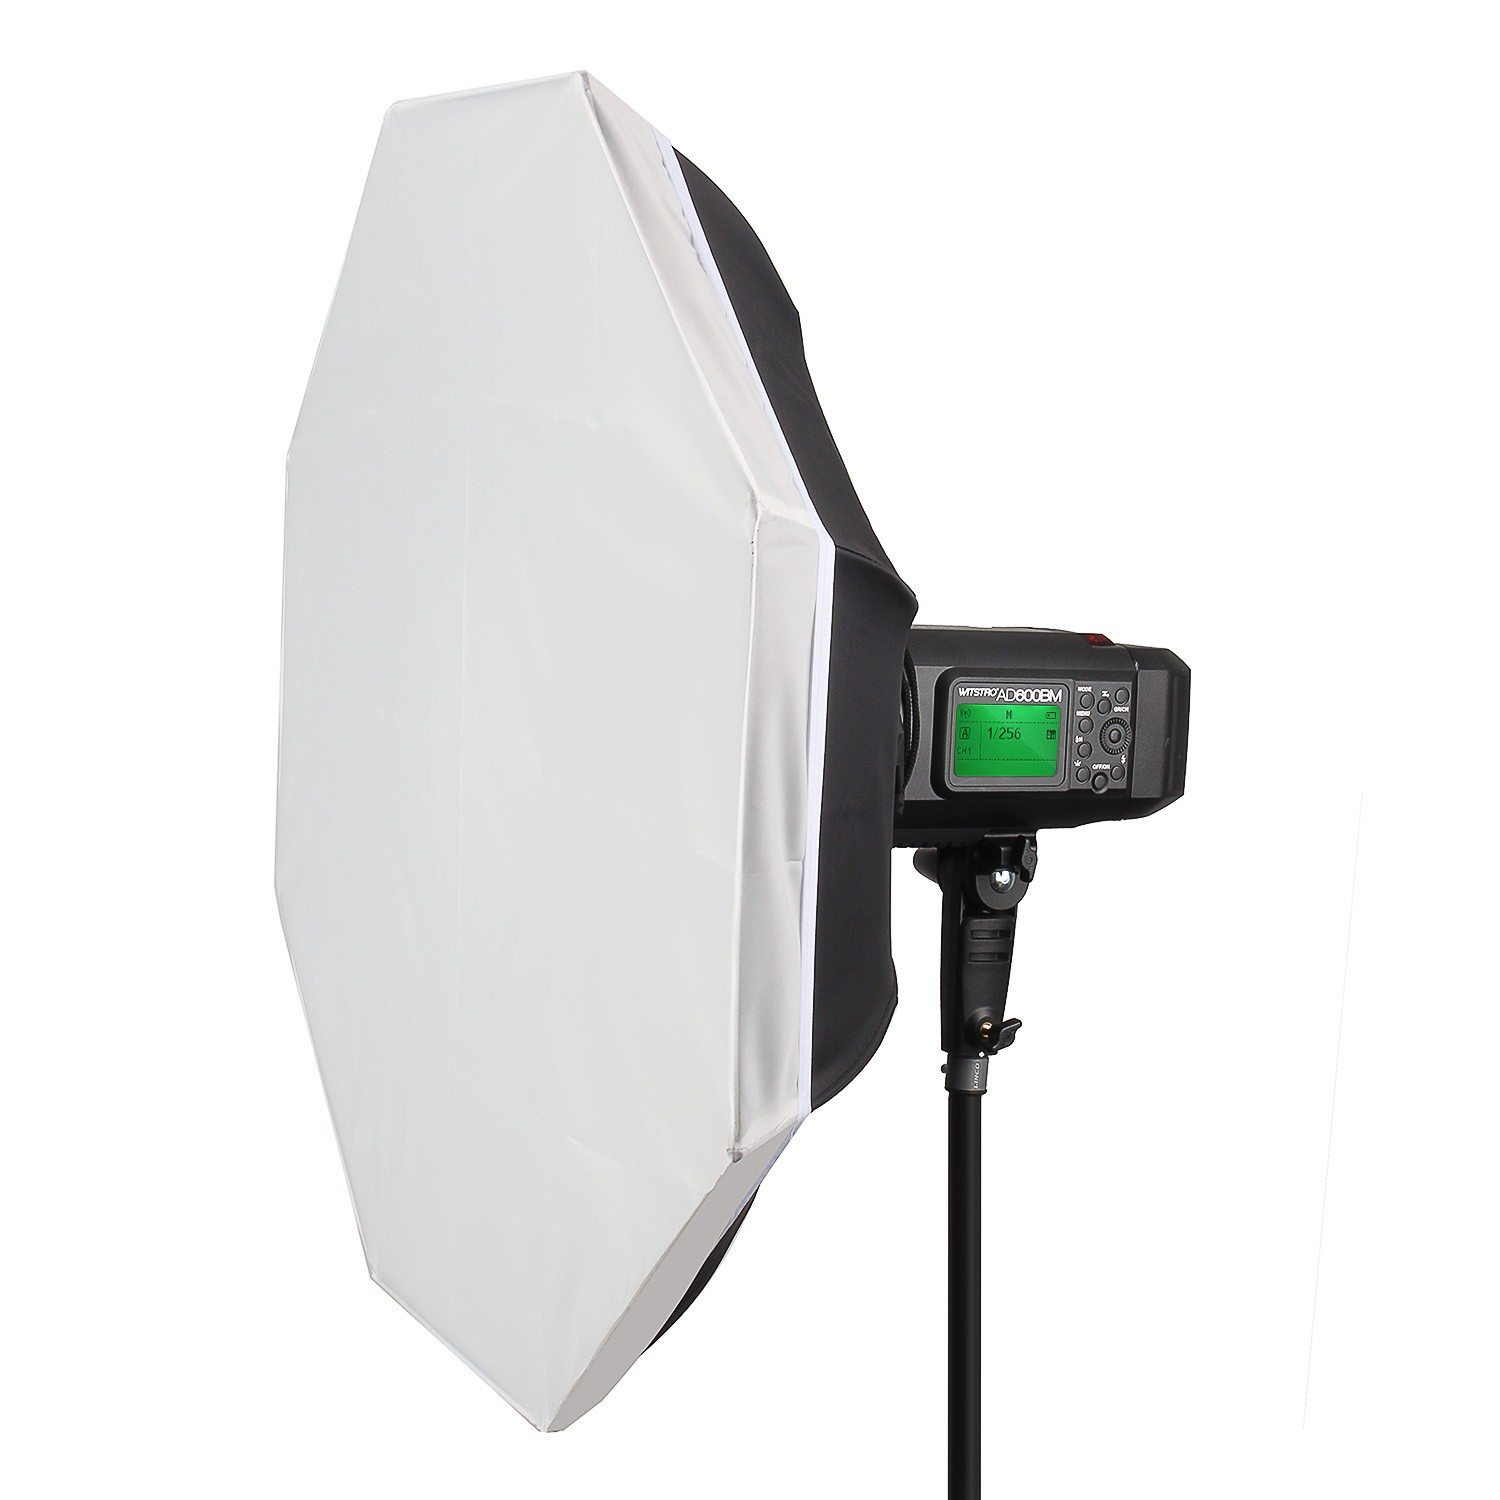 EACHSHOT 40 100CM Foldable Portable Folding Beauty Dish White Flash Diffuser Speedlight Softbox With Bowens Mount For Nikon